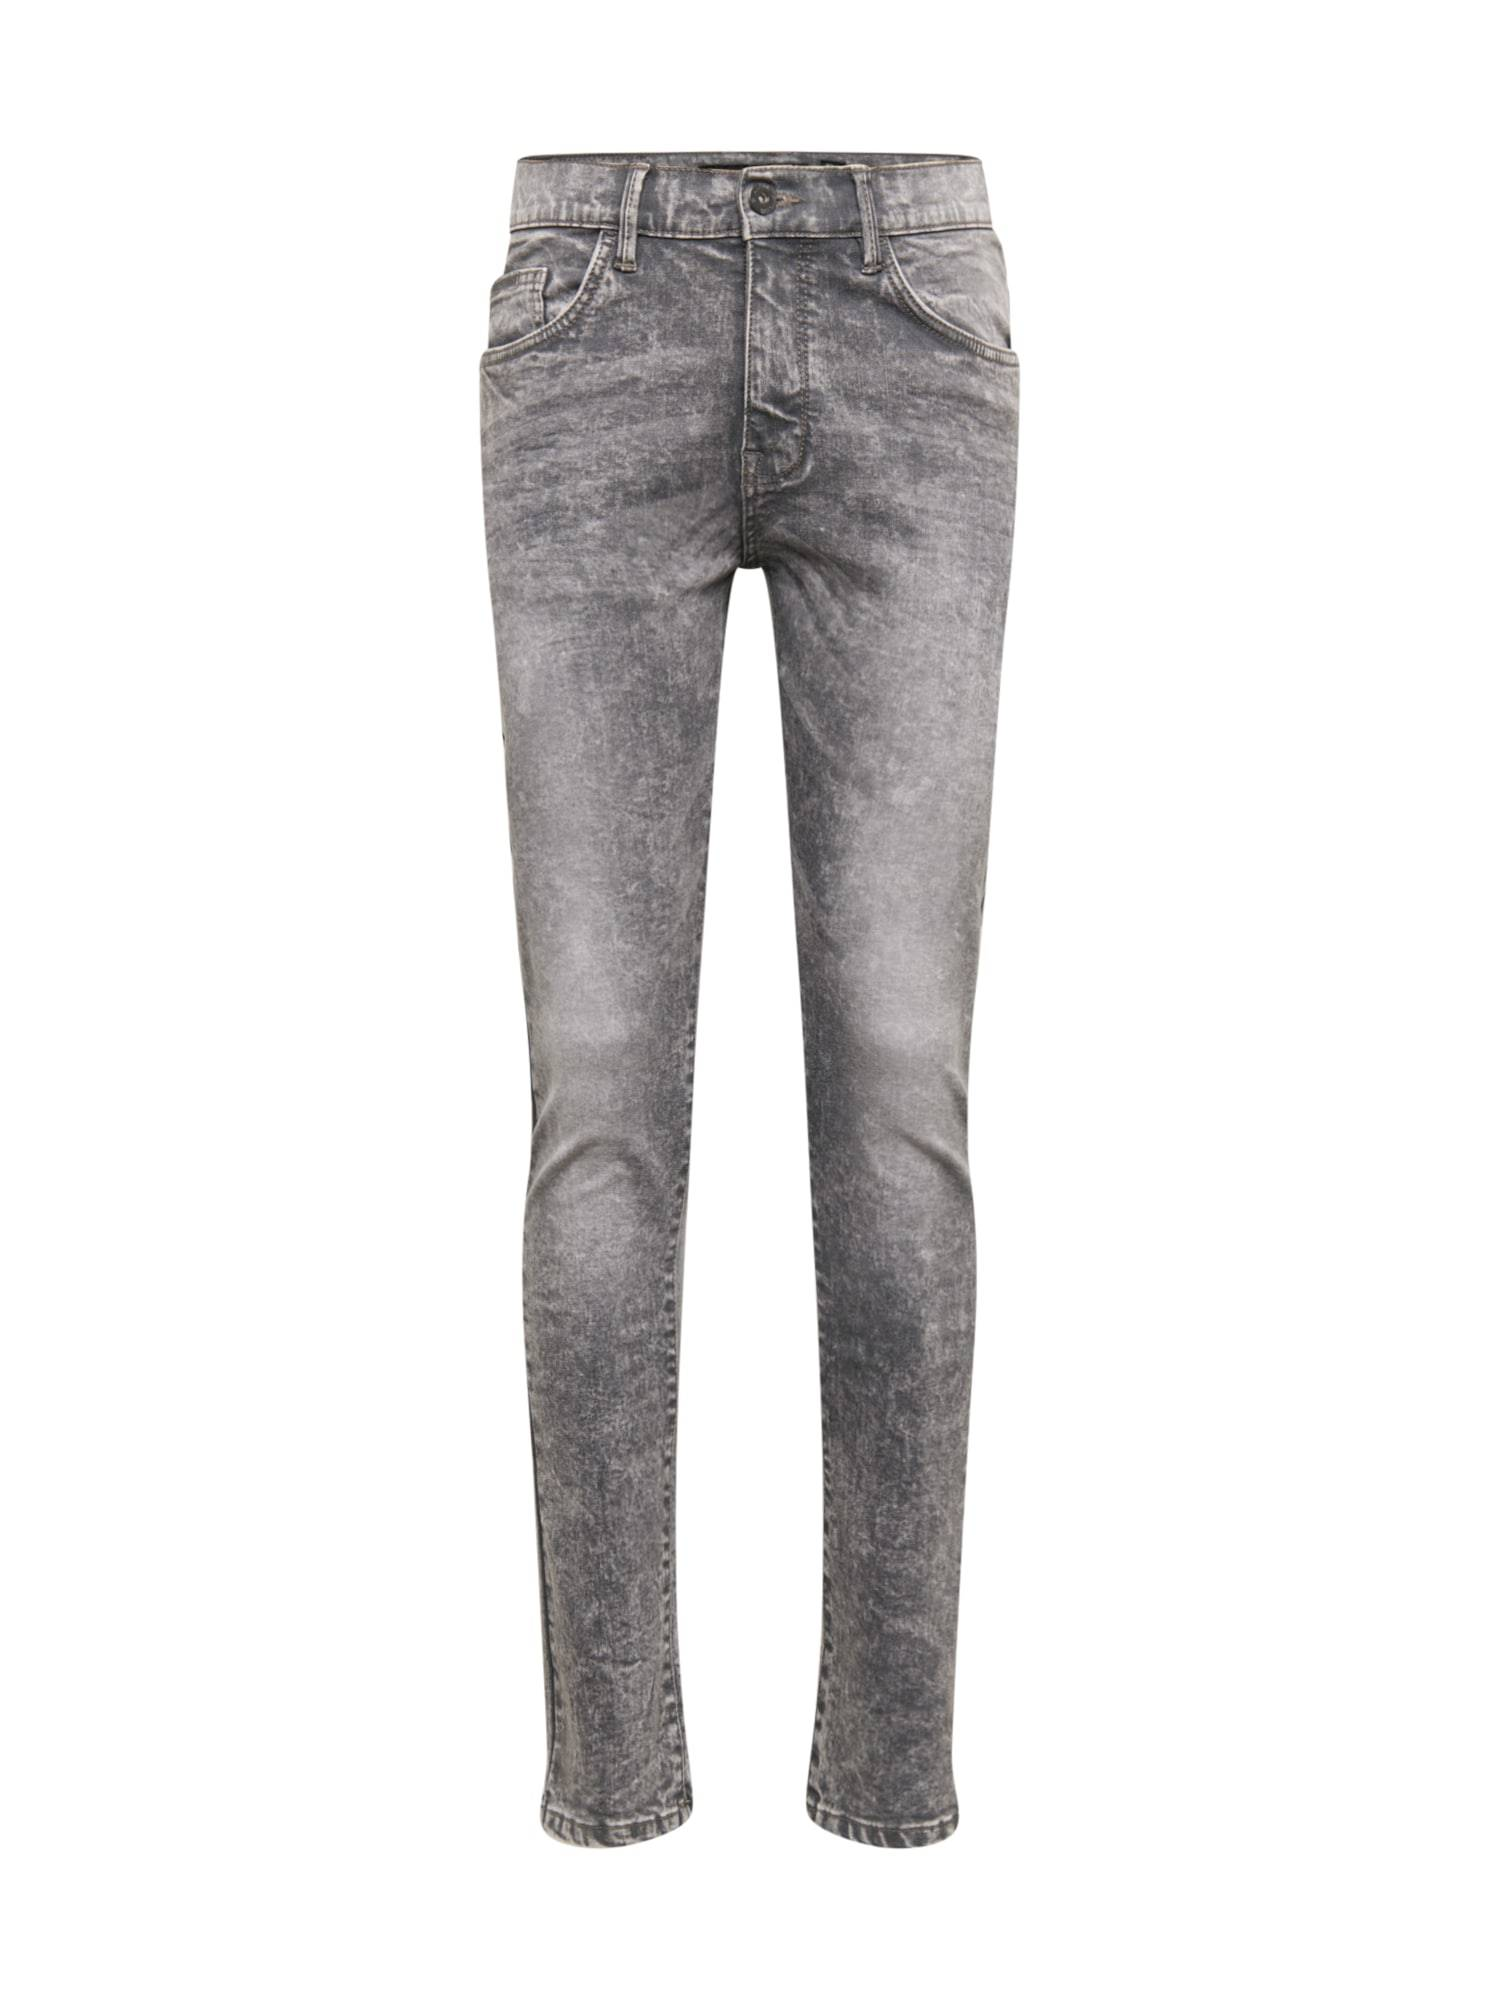 INDICODE JEANS Jean 'Culpeper'  - Gris - Taille: 36 - male